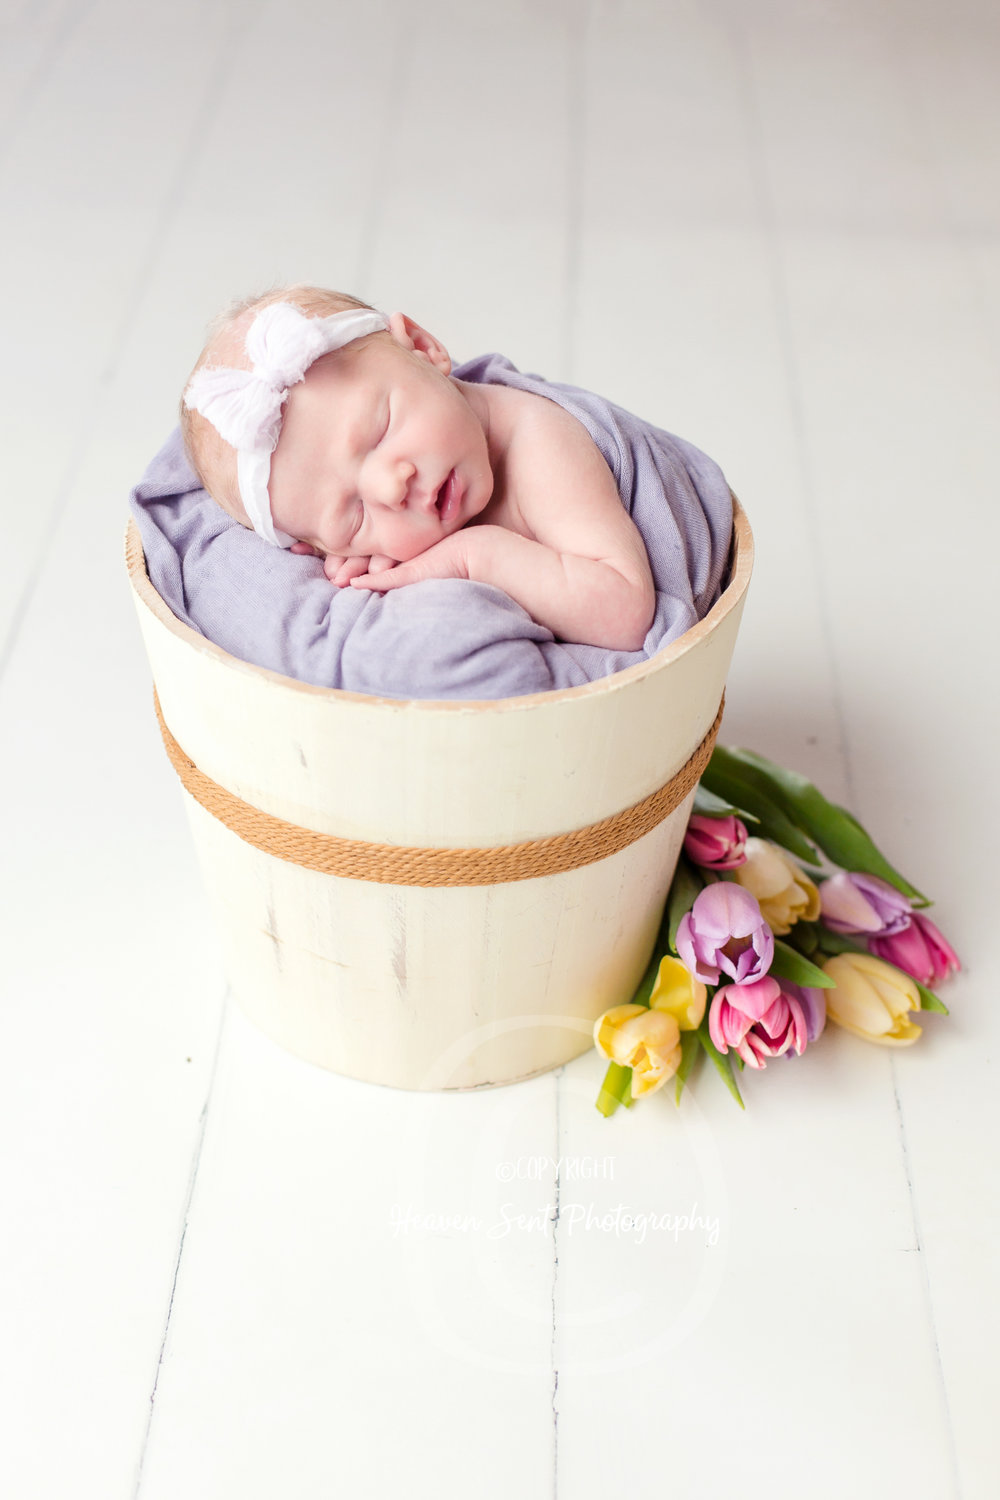 zoey_newborn (15 of 44).jpg